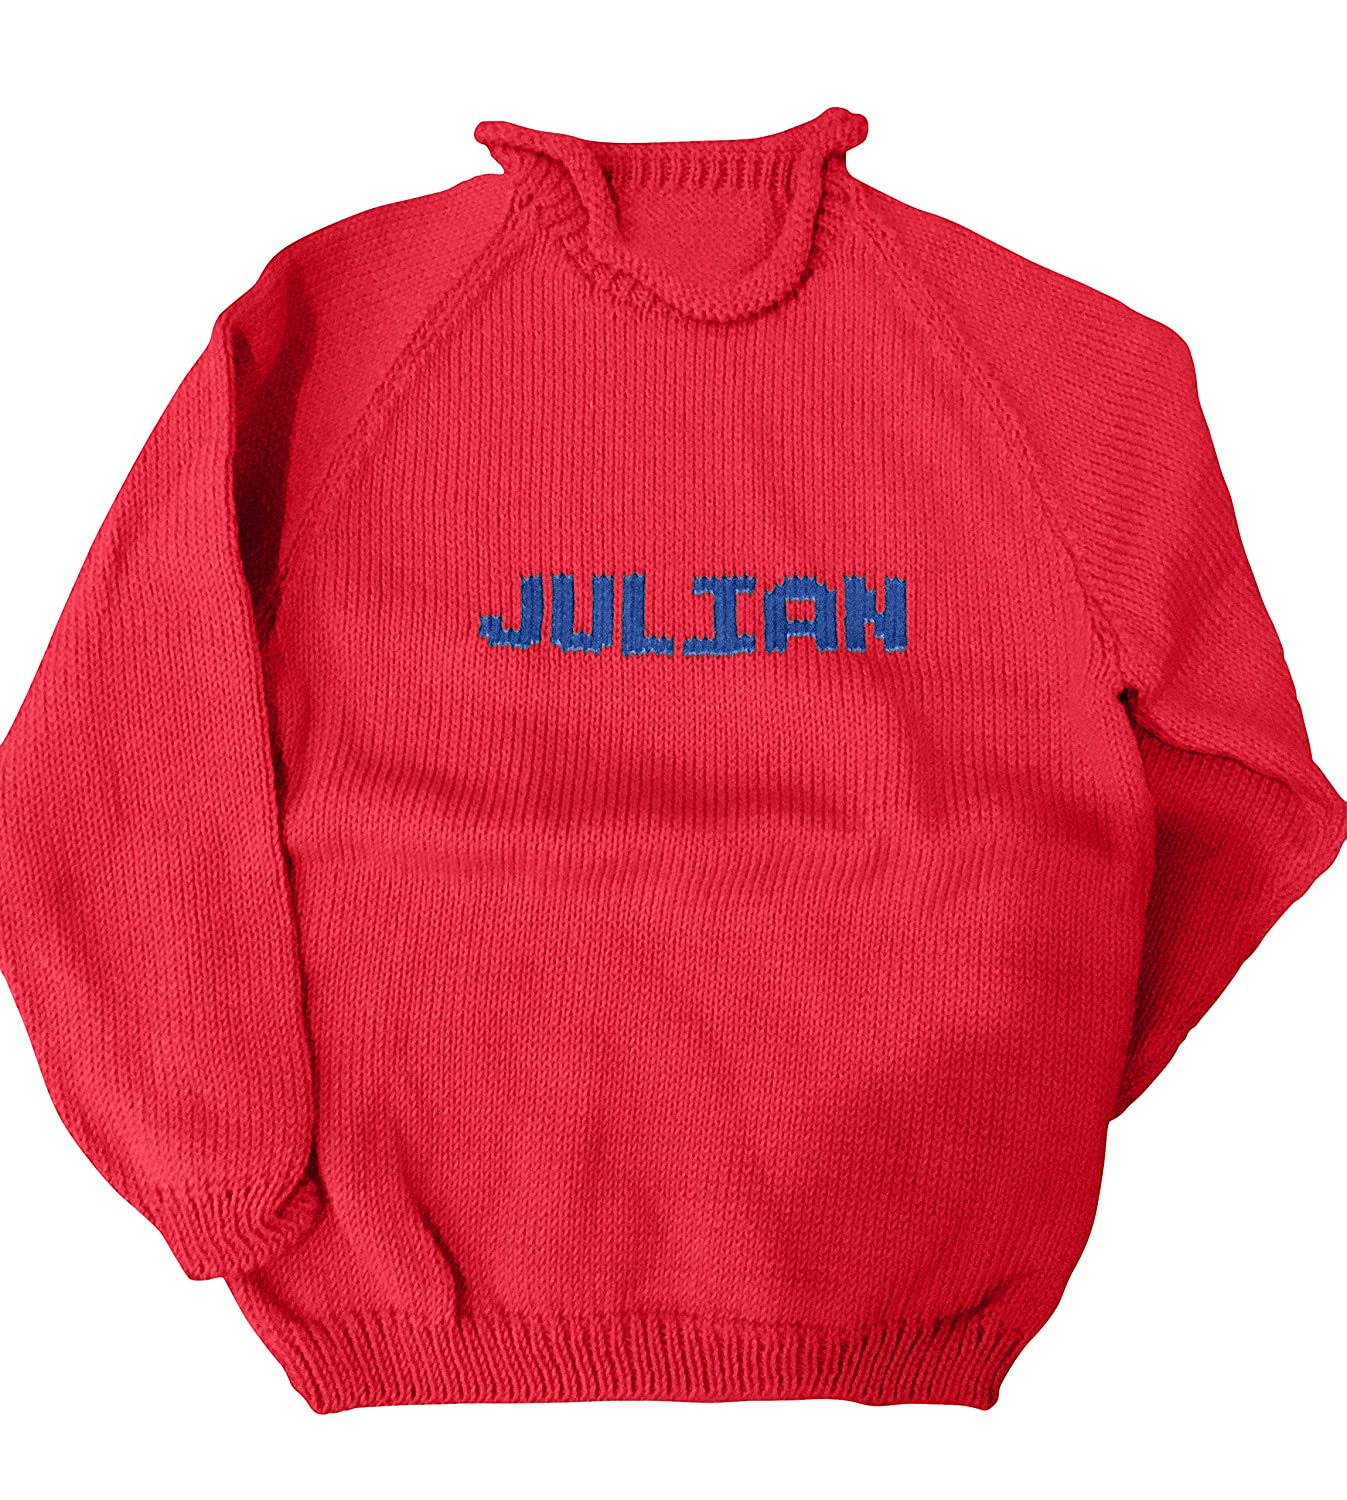 Montreal Pro Hockey Child Name Sweater